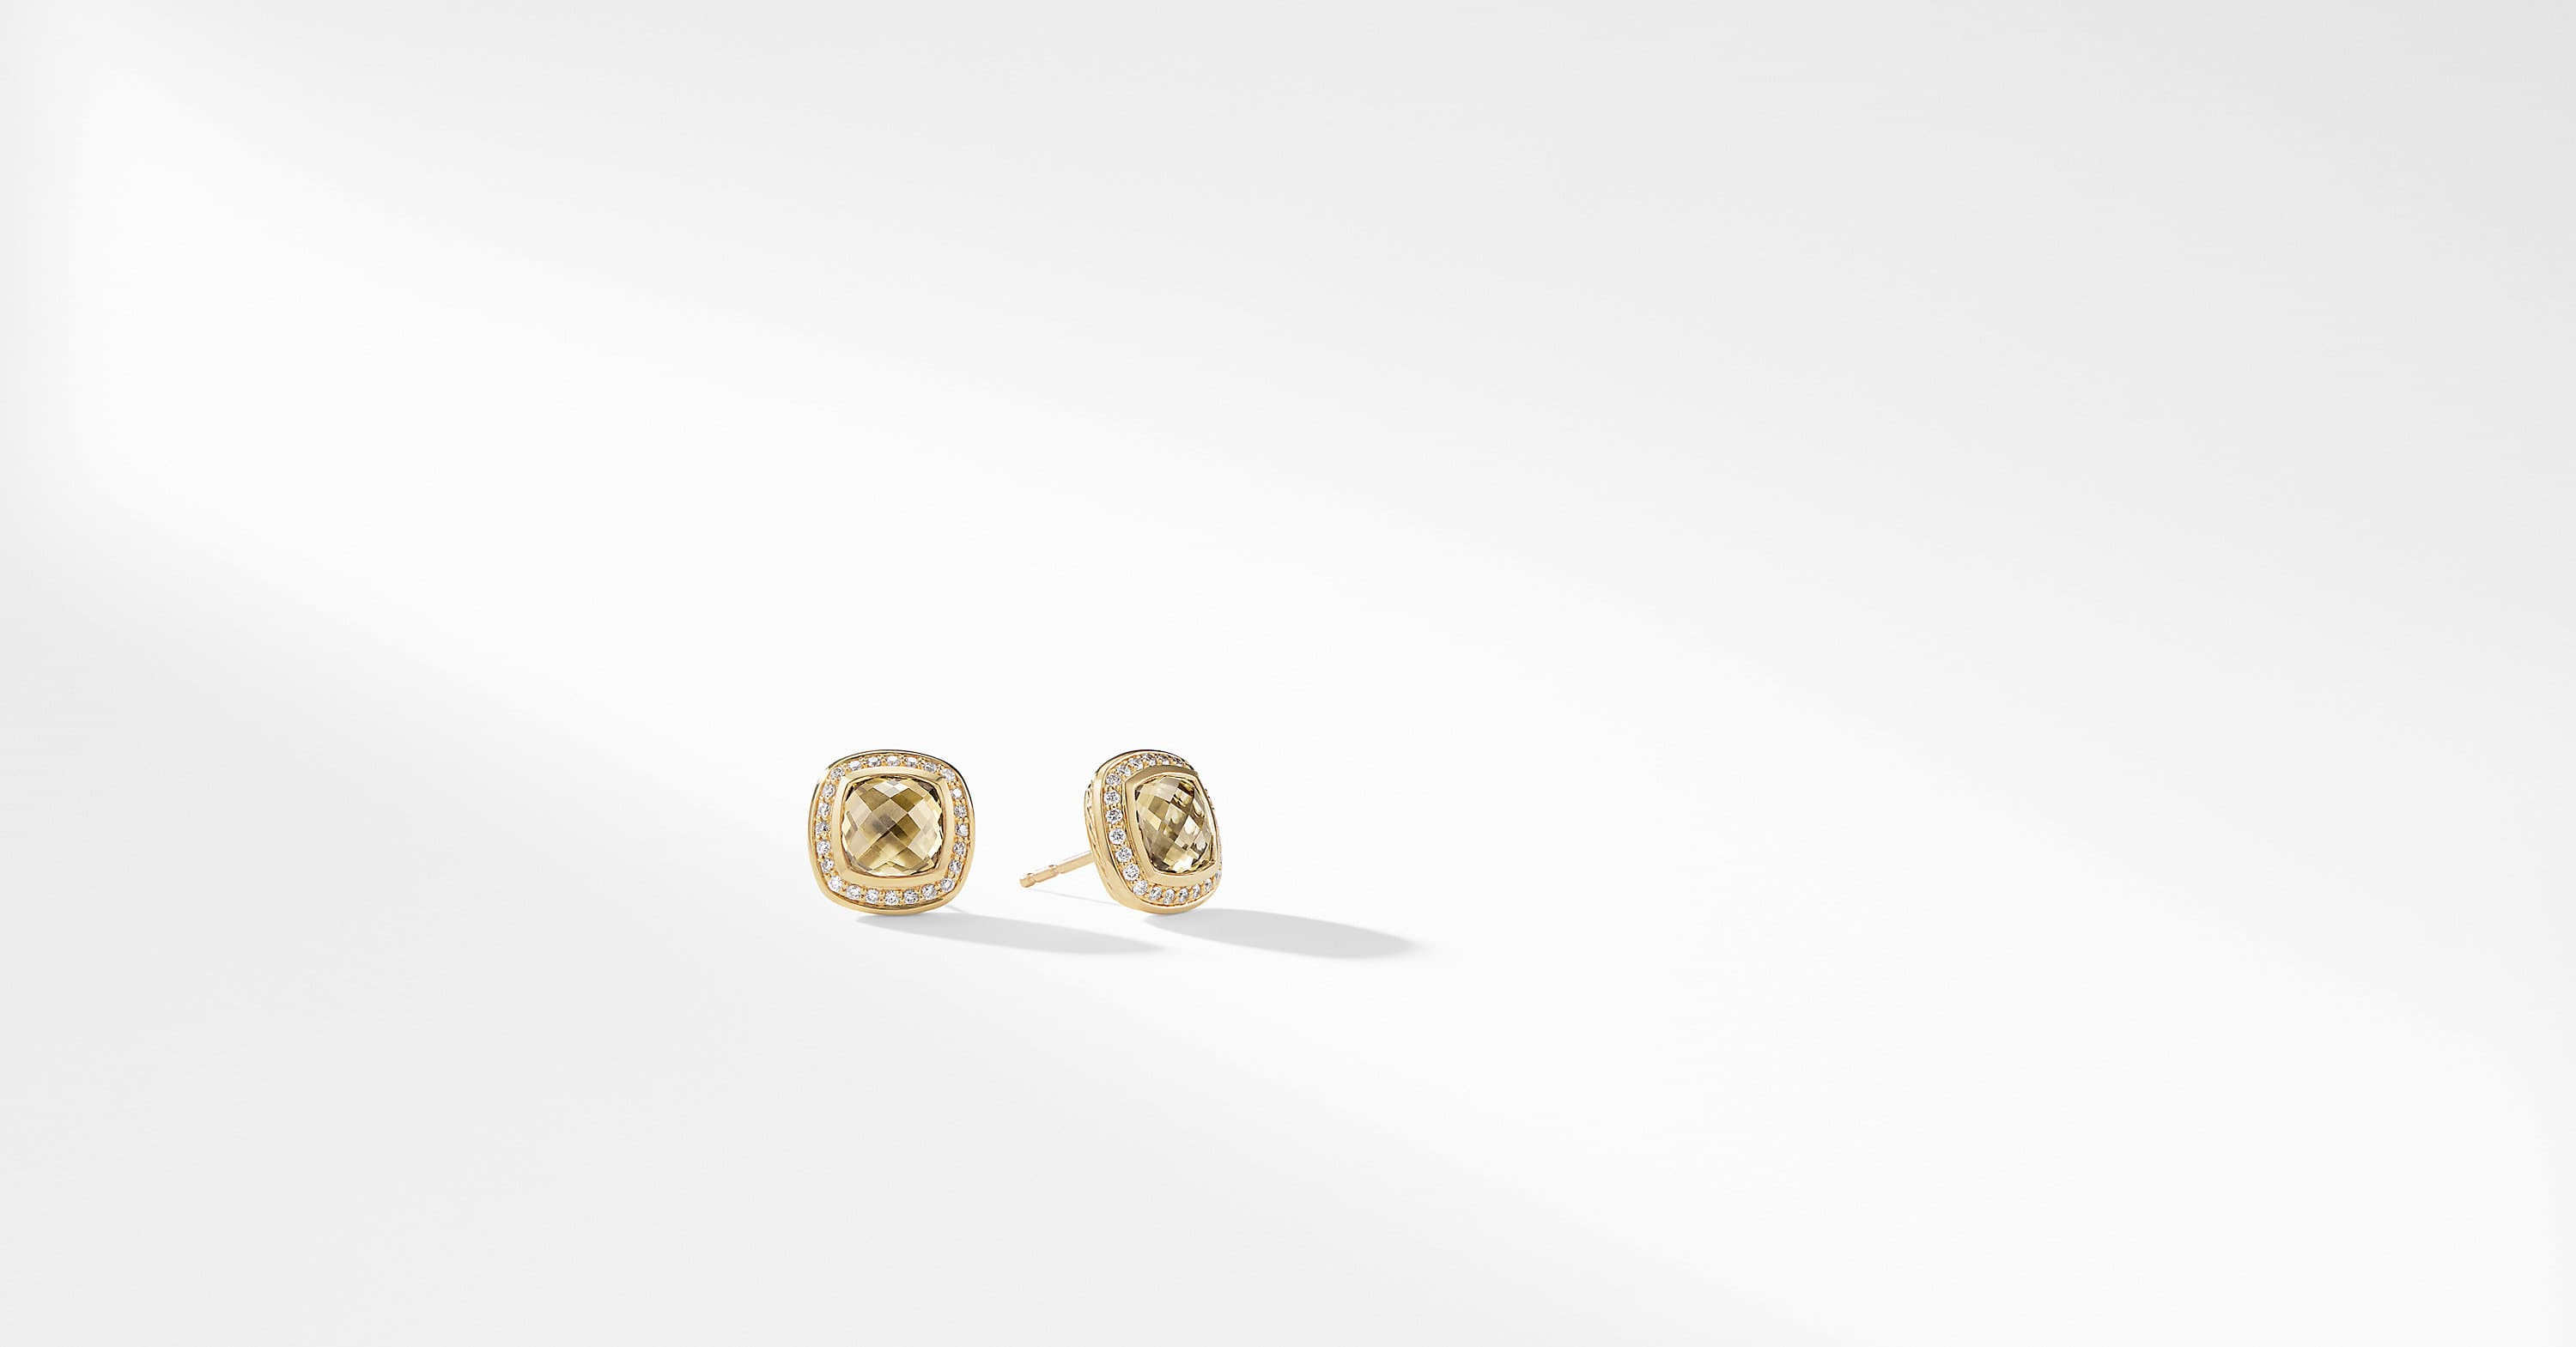 Albion Earrings with Diamonds in 18K Gold, 7mm